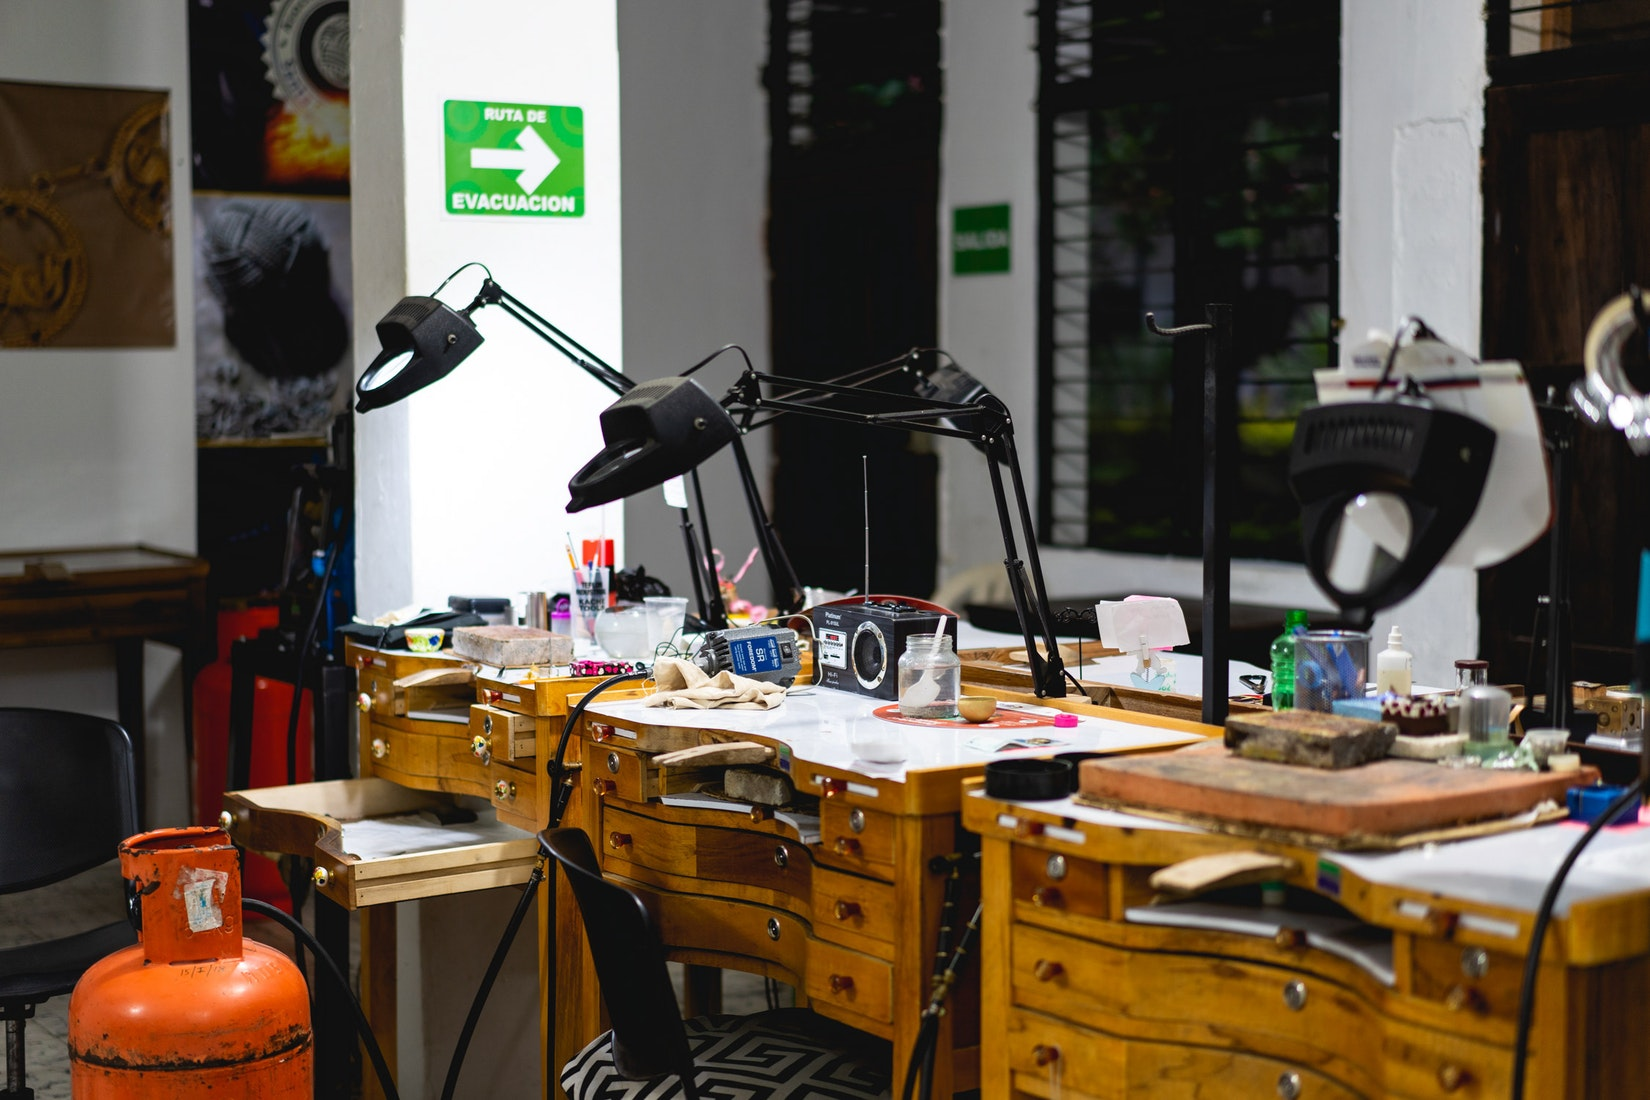 Interior of work stations at a filigree shop in Colombia